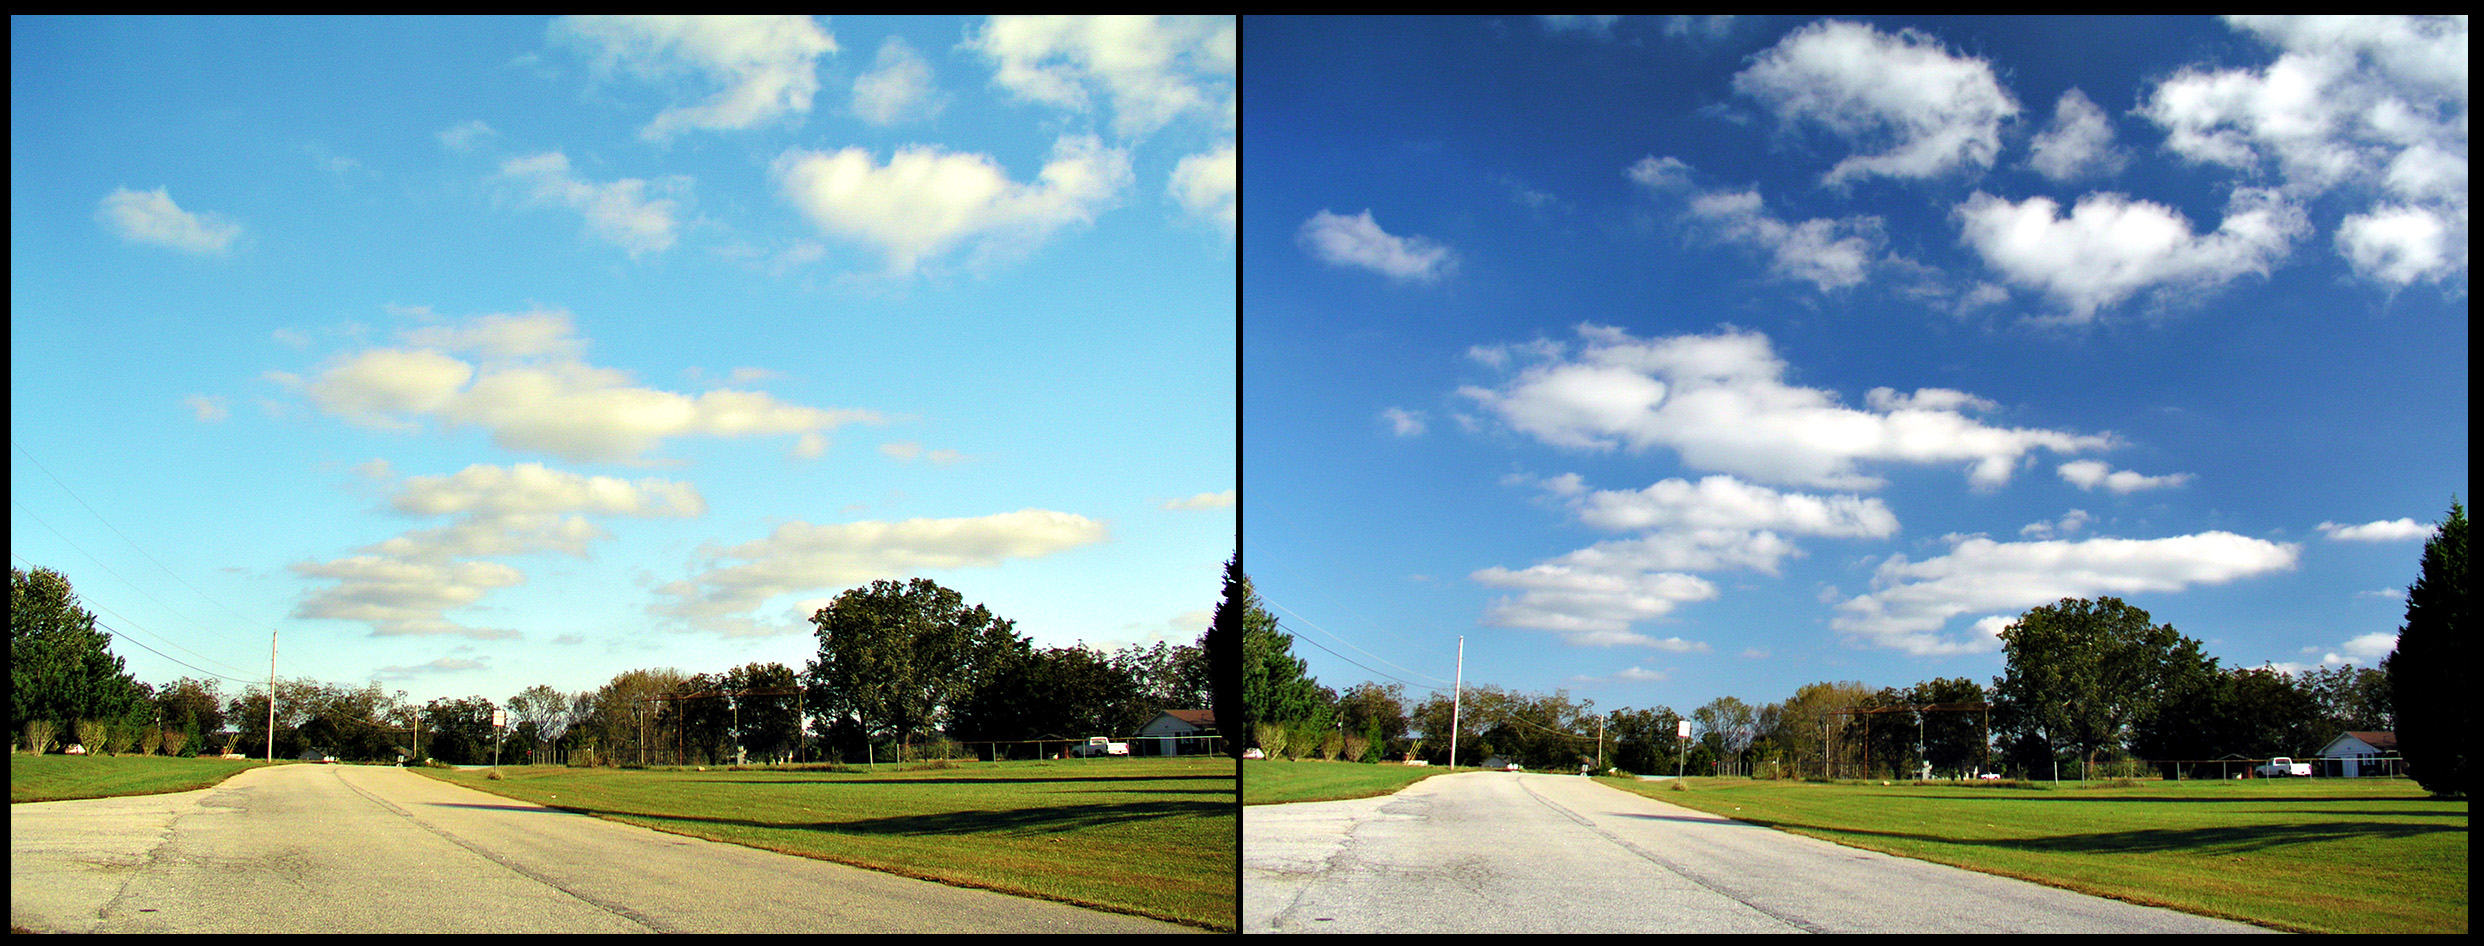 The effects of a polarising filter (right image) on the sky in a photograph.